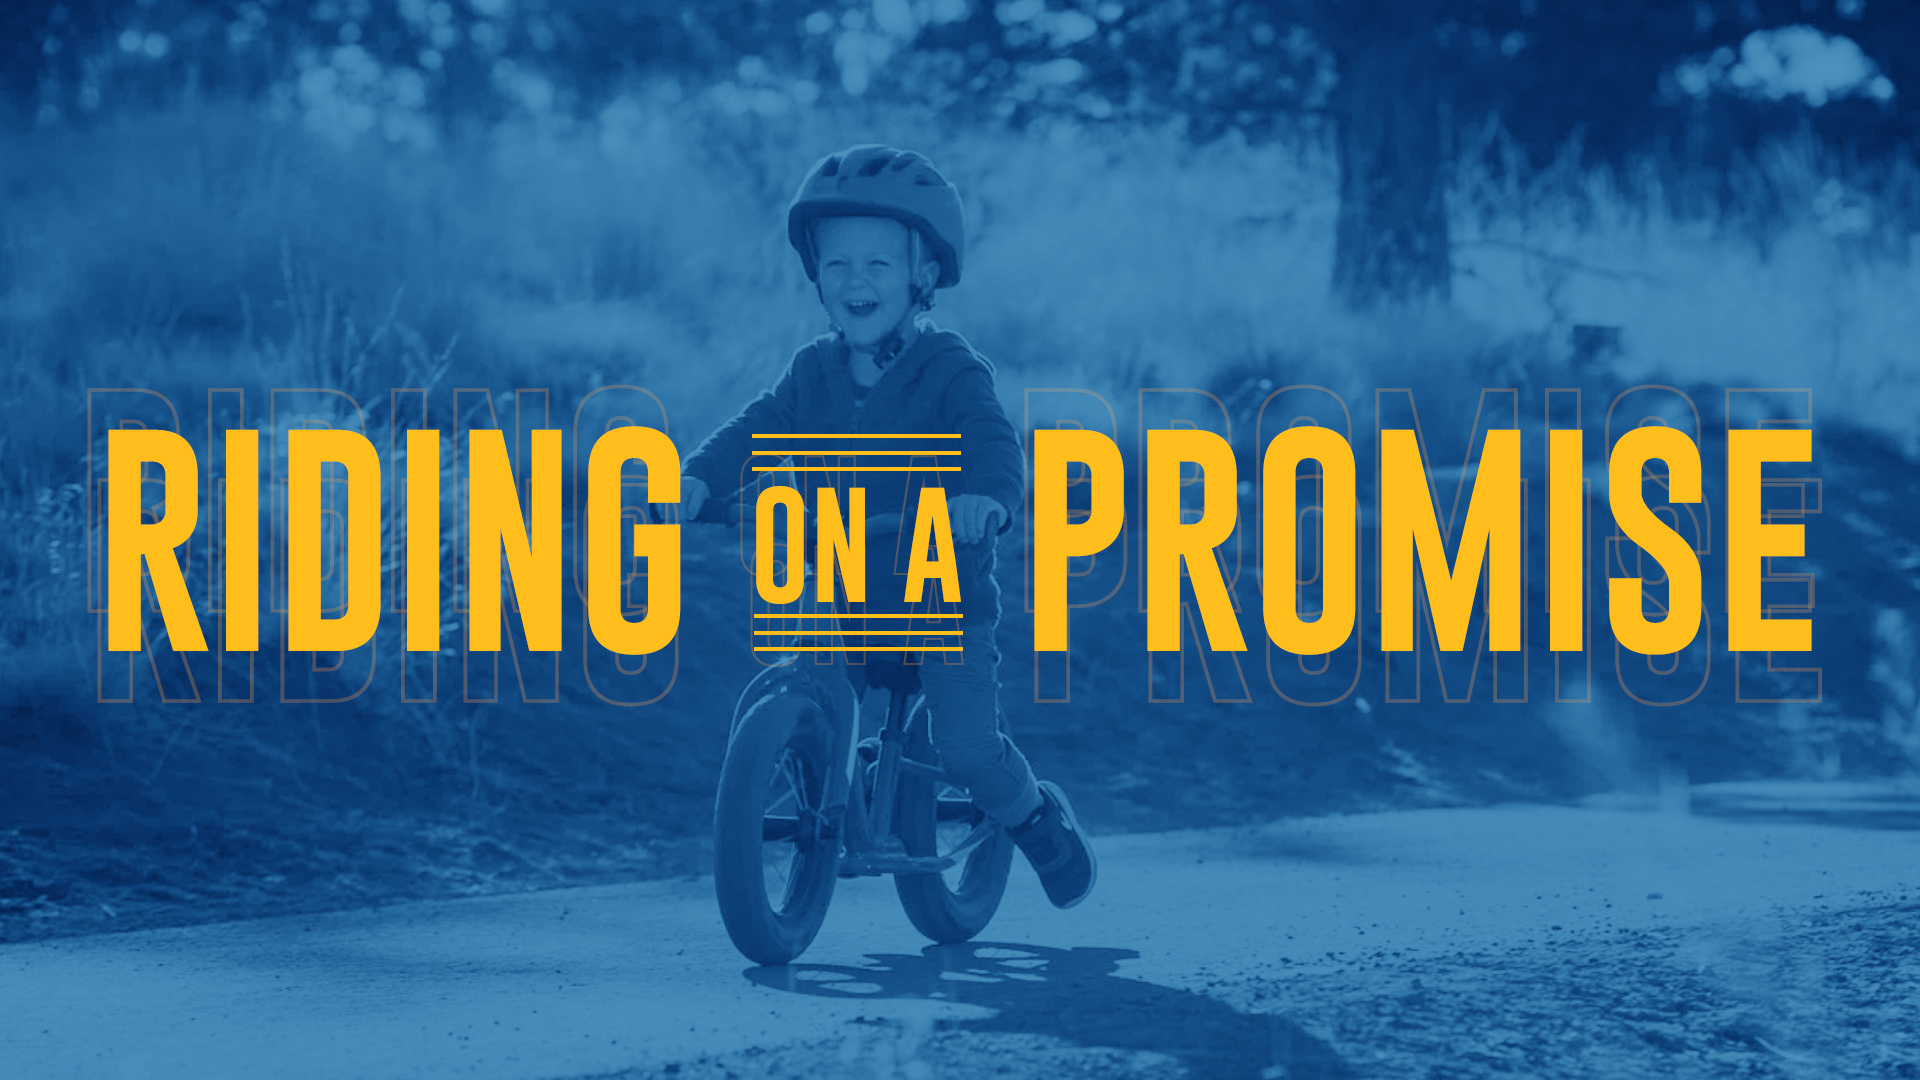 Riding on a Promise